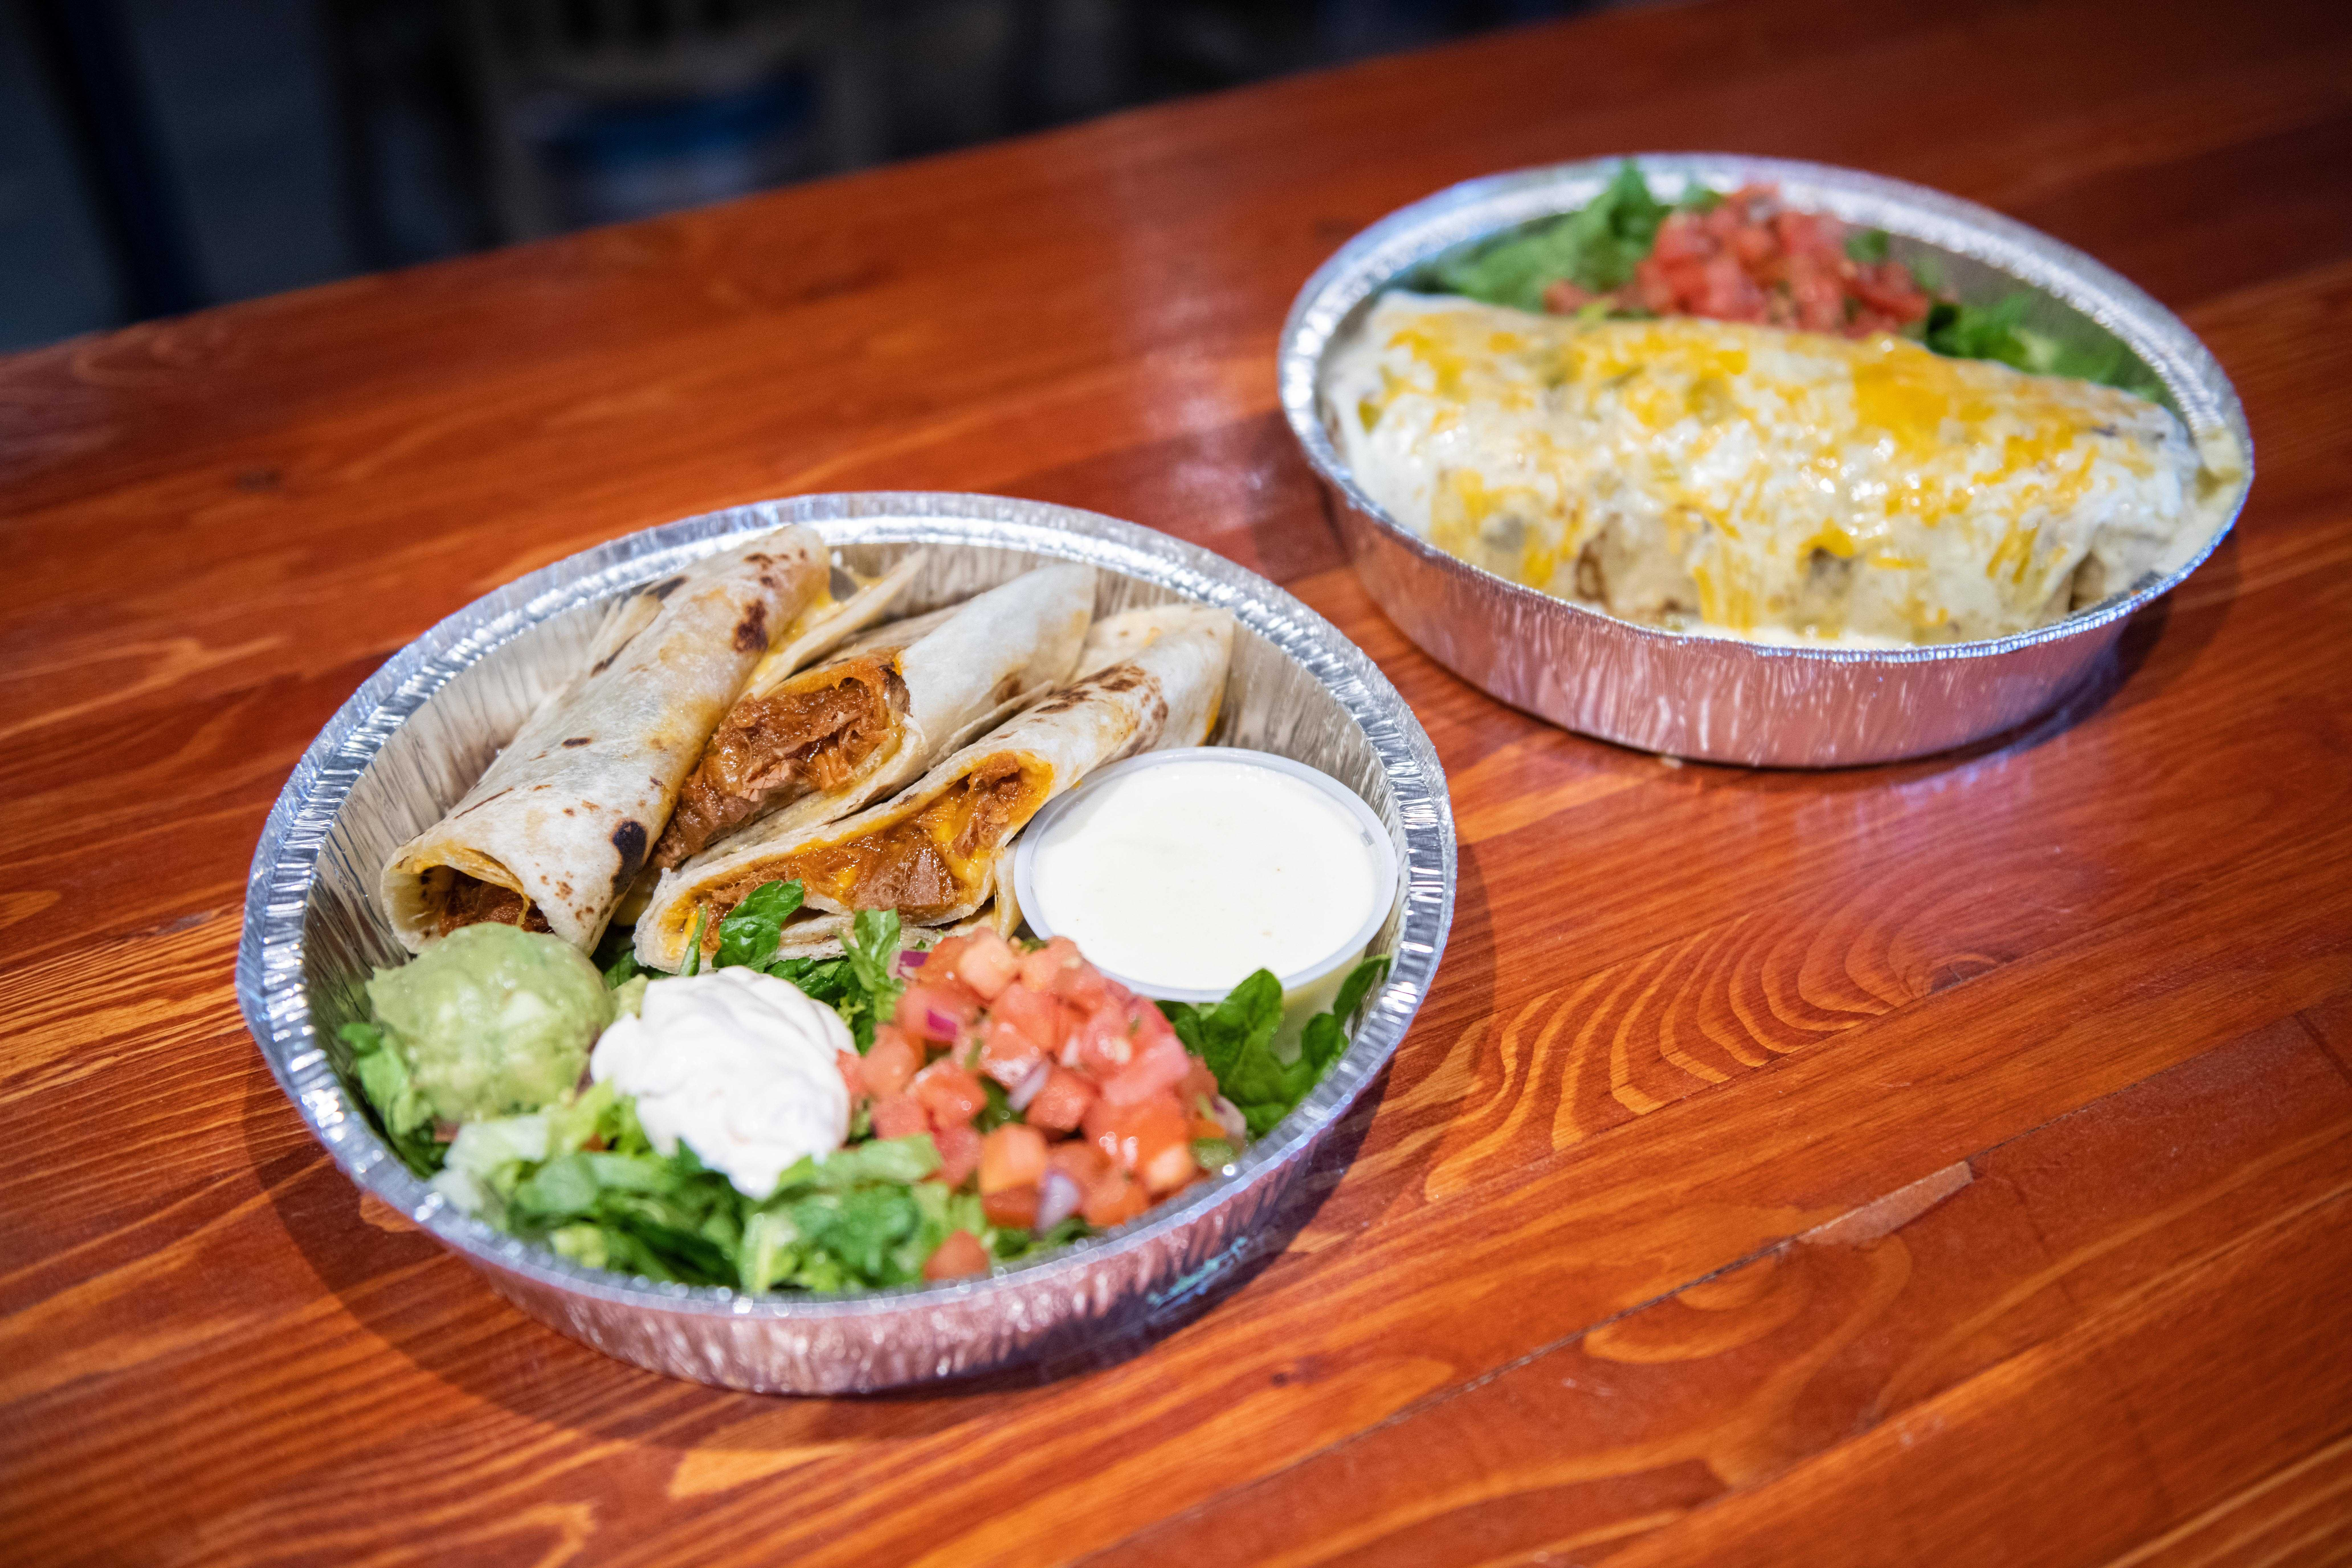 burrito and enchilada takeout from Cafe Mexicali